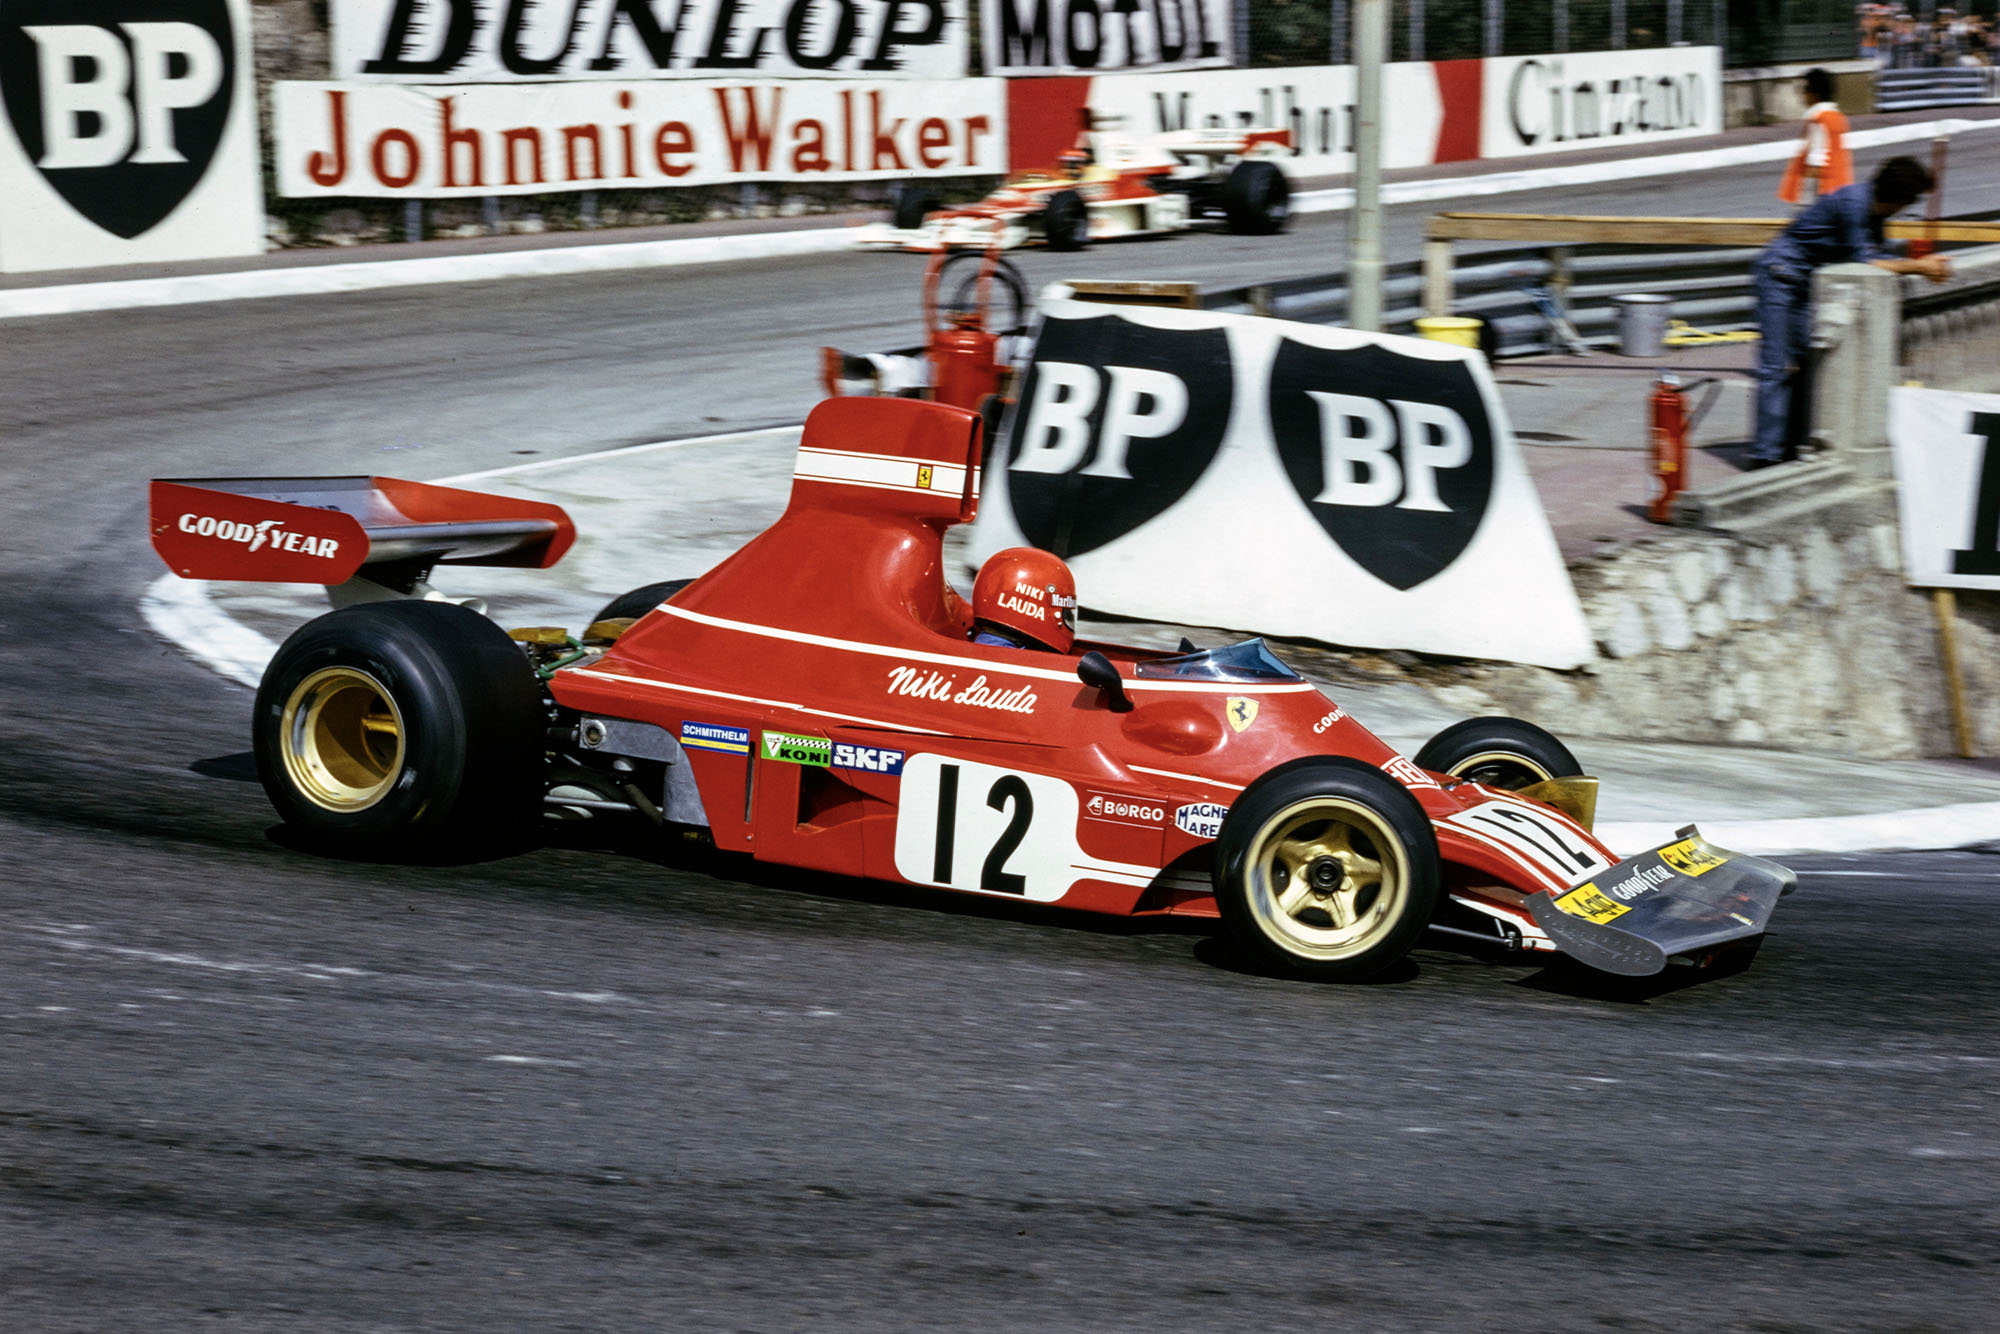 Niki Lauda rounds Loews in his Ferrari a